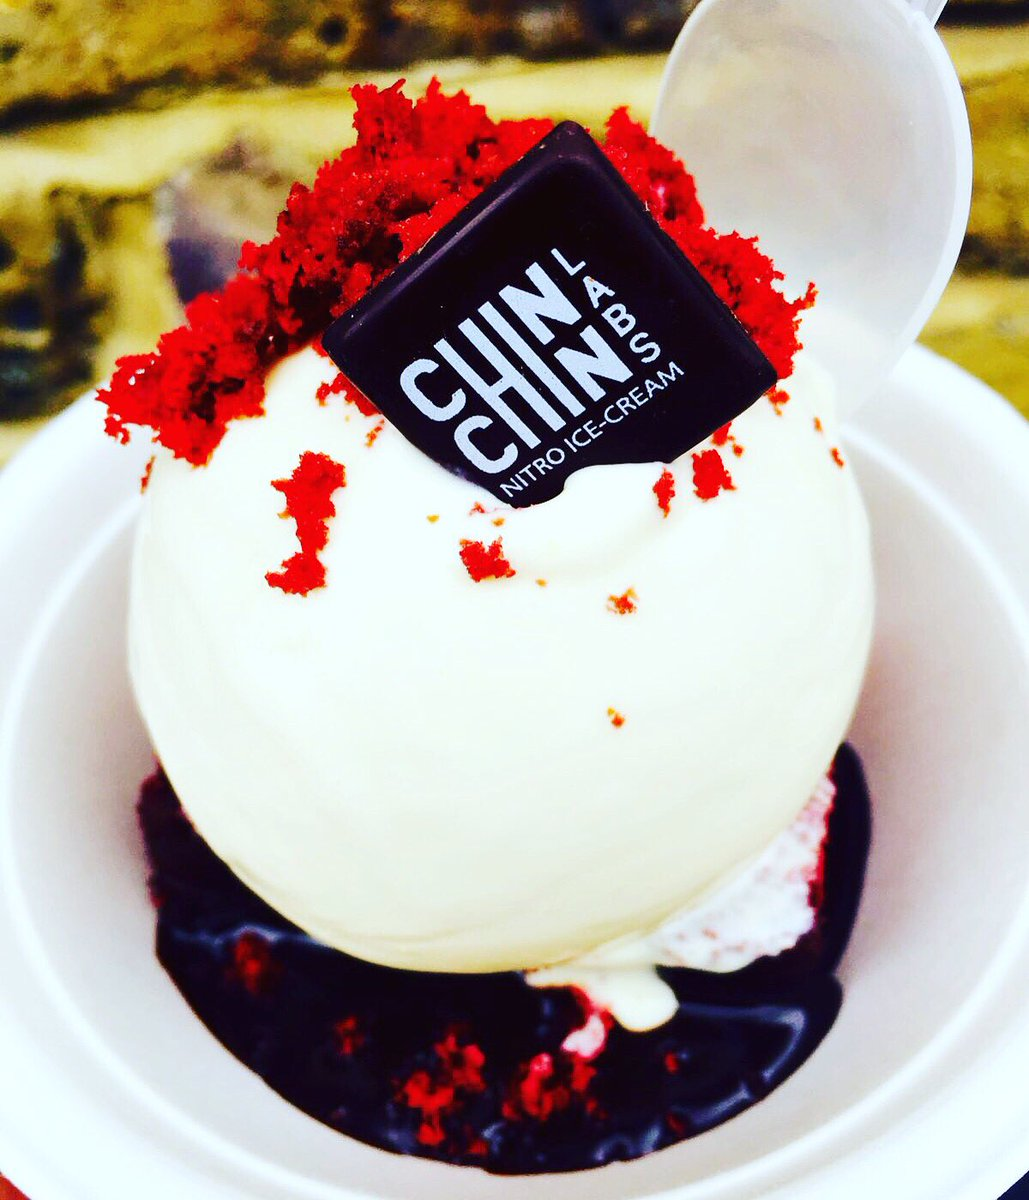 'Red Velvet Sundae' Moist red velvet cake,warm Chocolate sauce &Cream Cheese Frosting ice cream Only @streetfeastldn https://t.co/kFkCuJbGKG